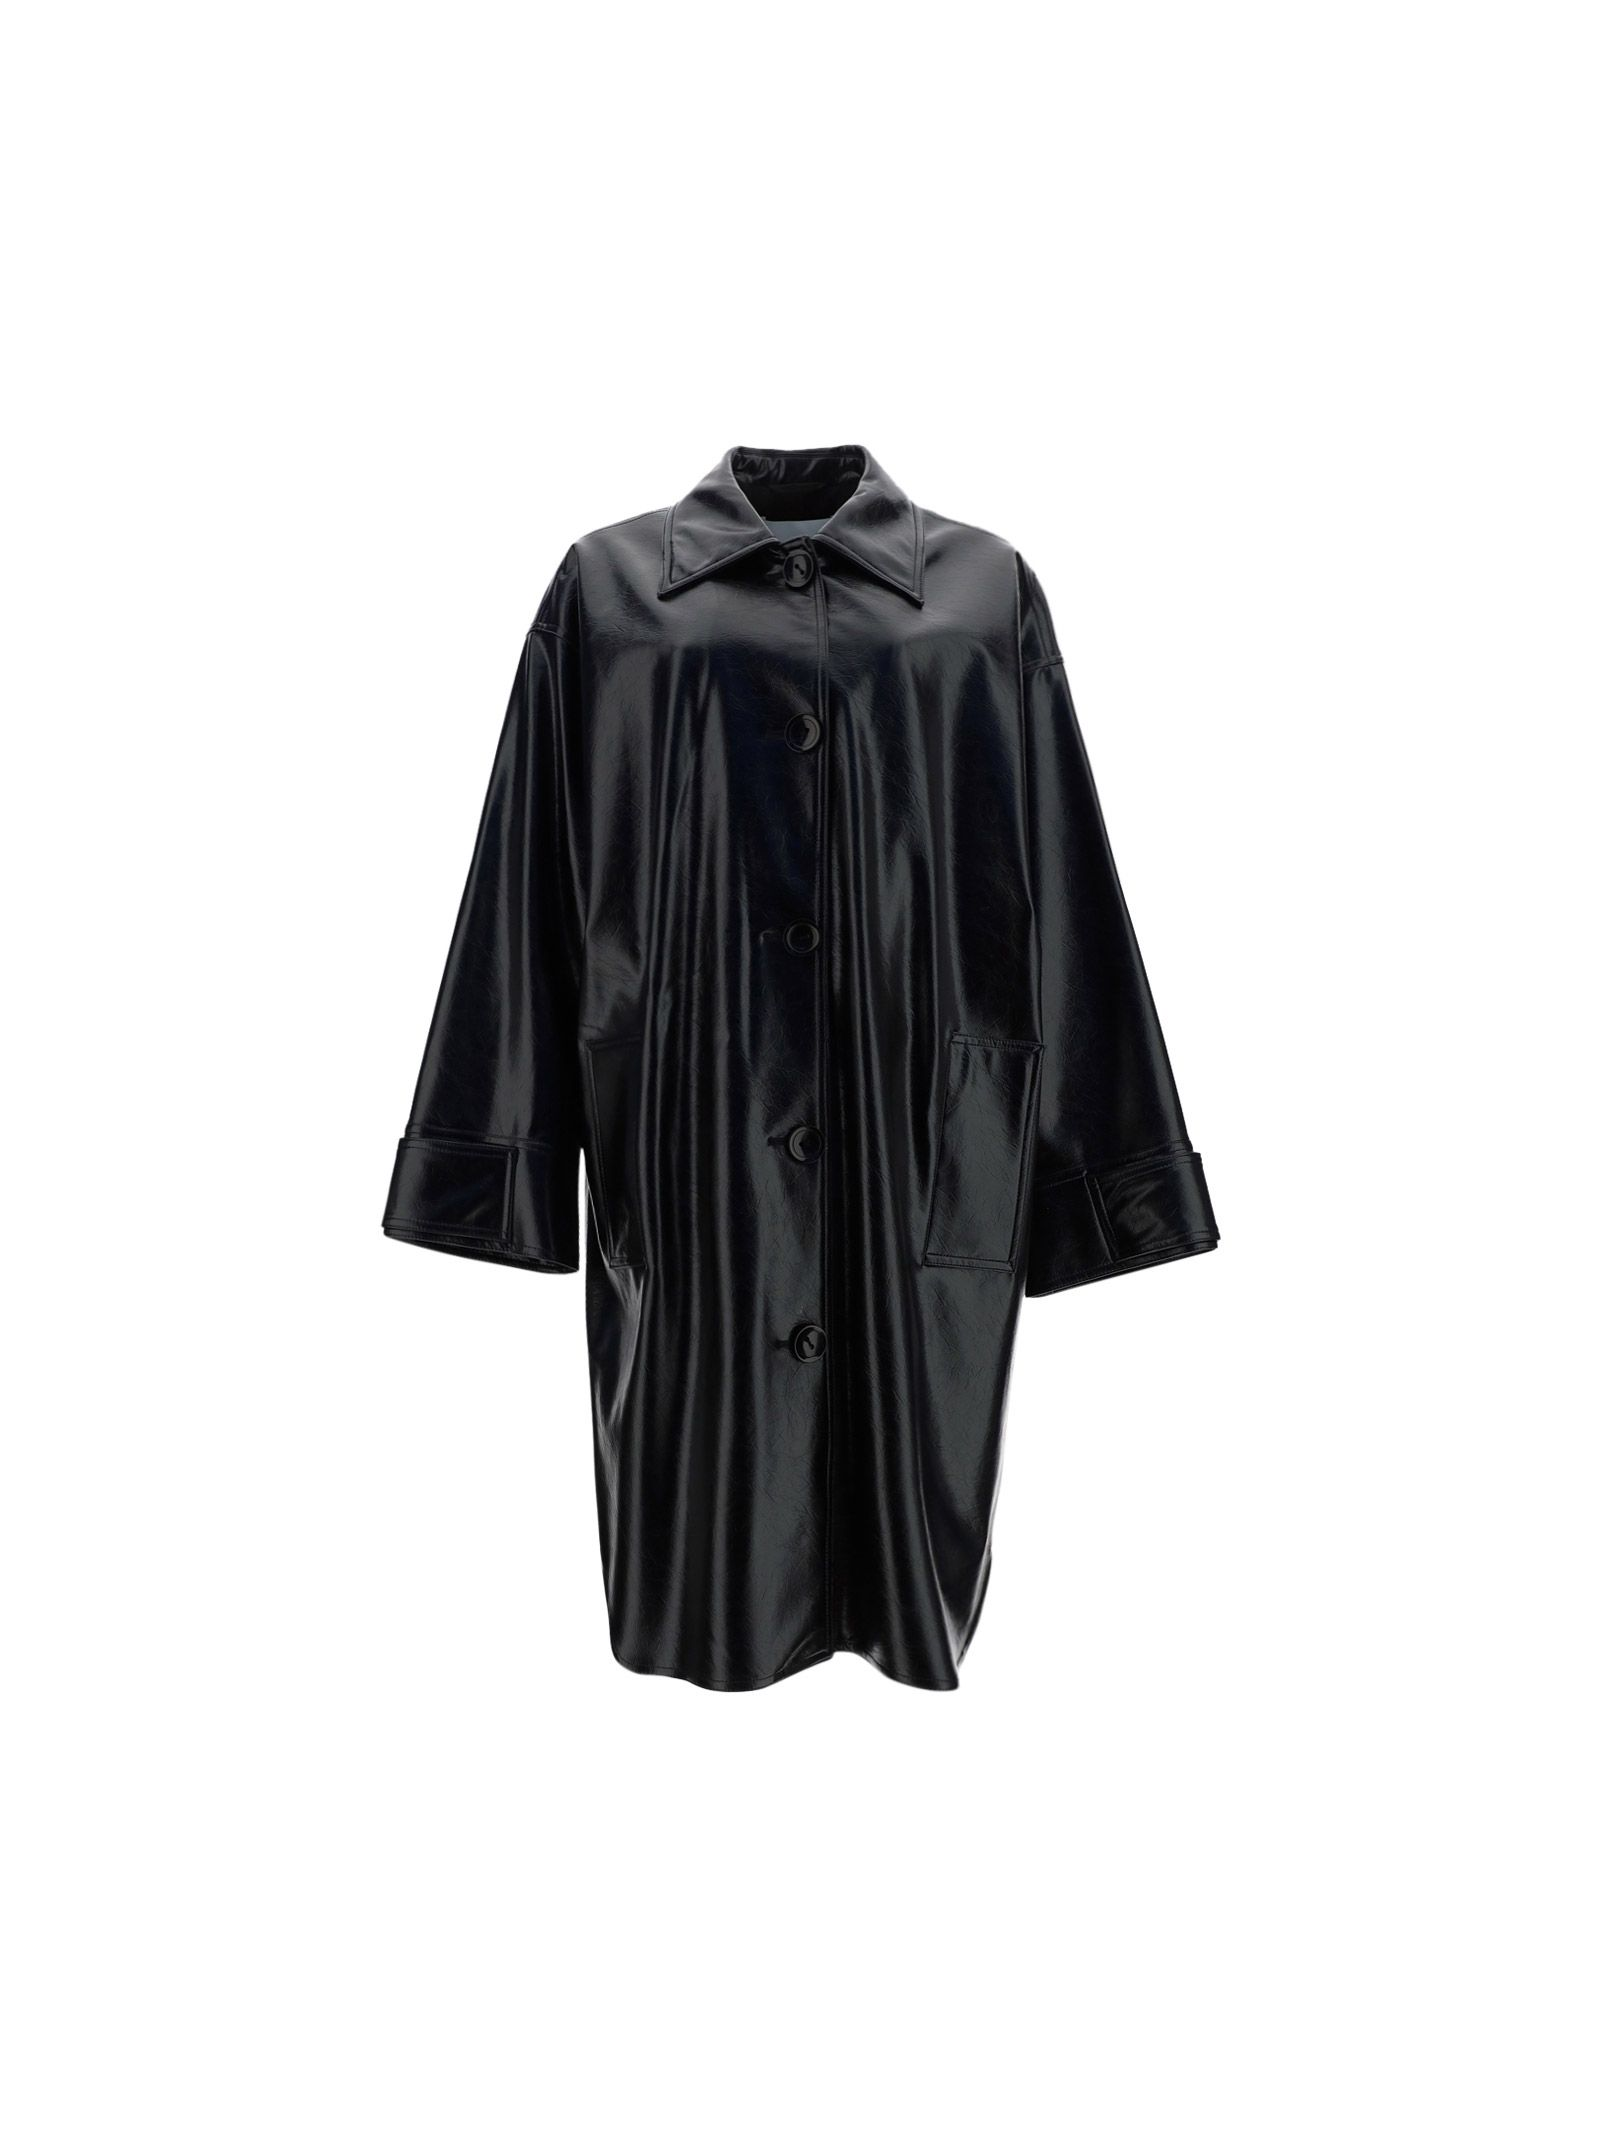 Stand Studio STAND WOMEN'S 61299822089900 BLACK OTHER MATERIALS COAT